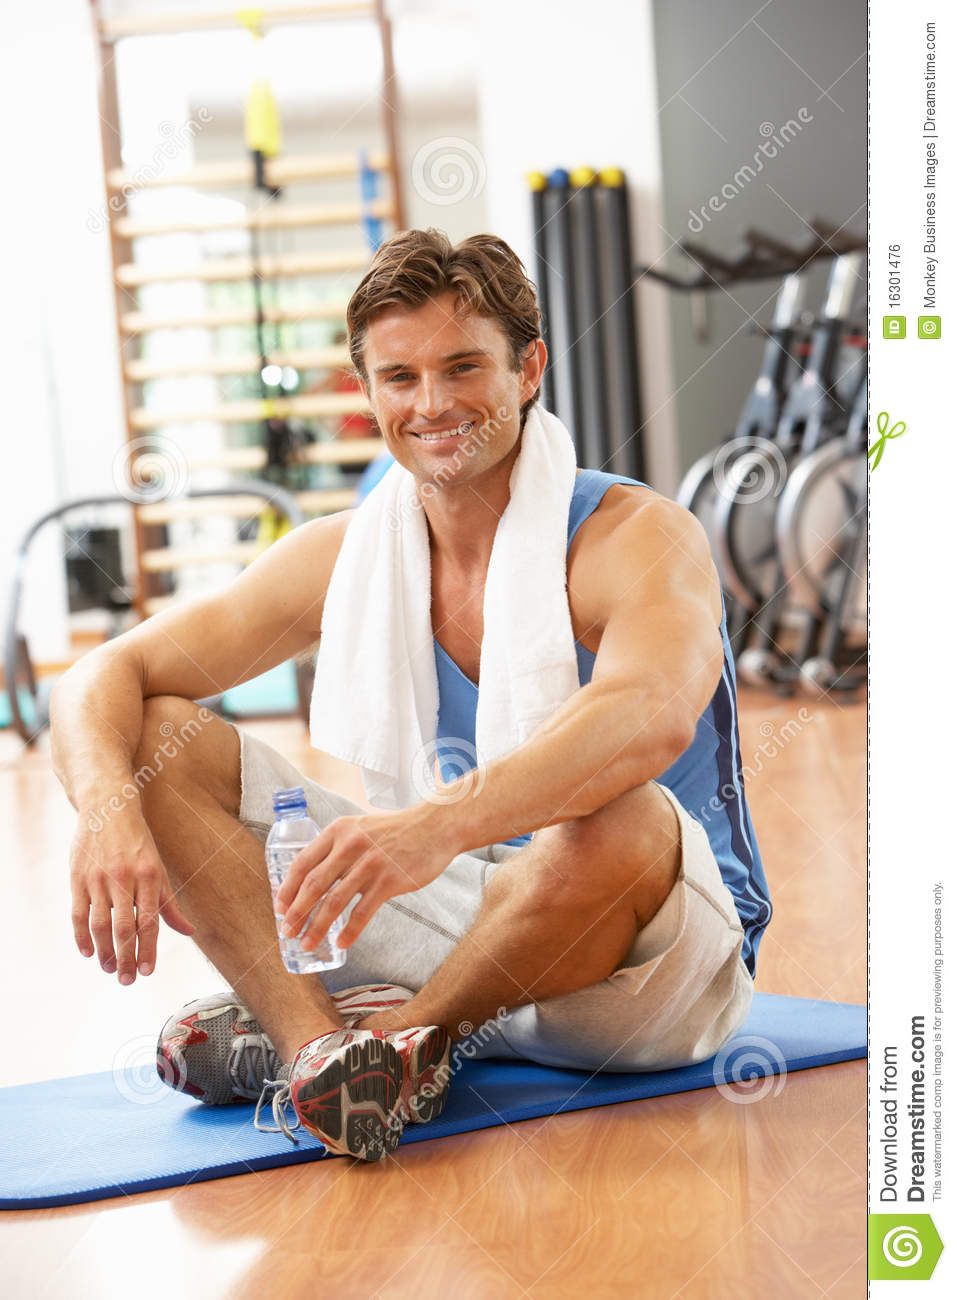 Man Resting After Exercise Royalty Free Stock Image